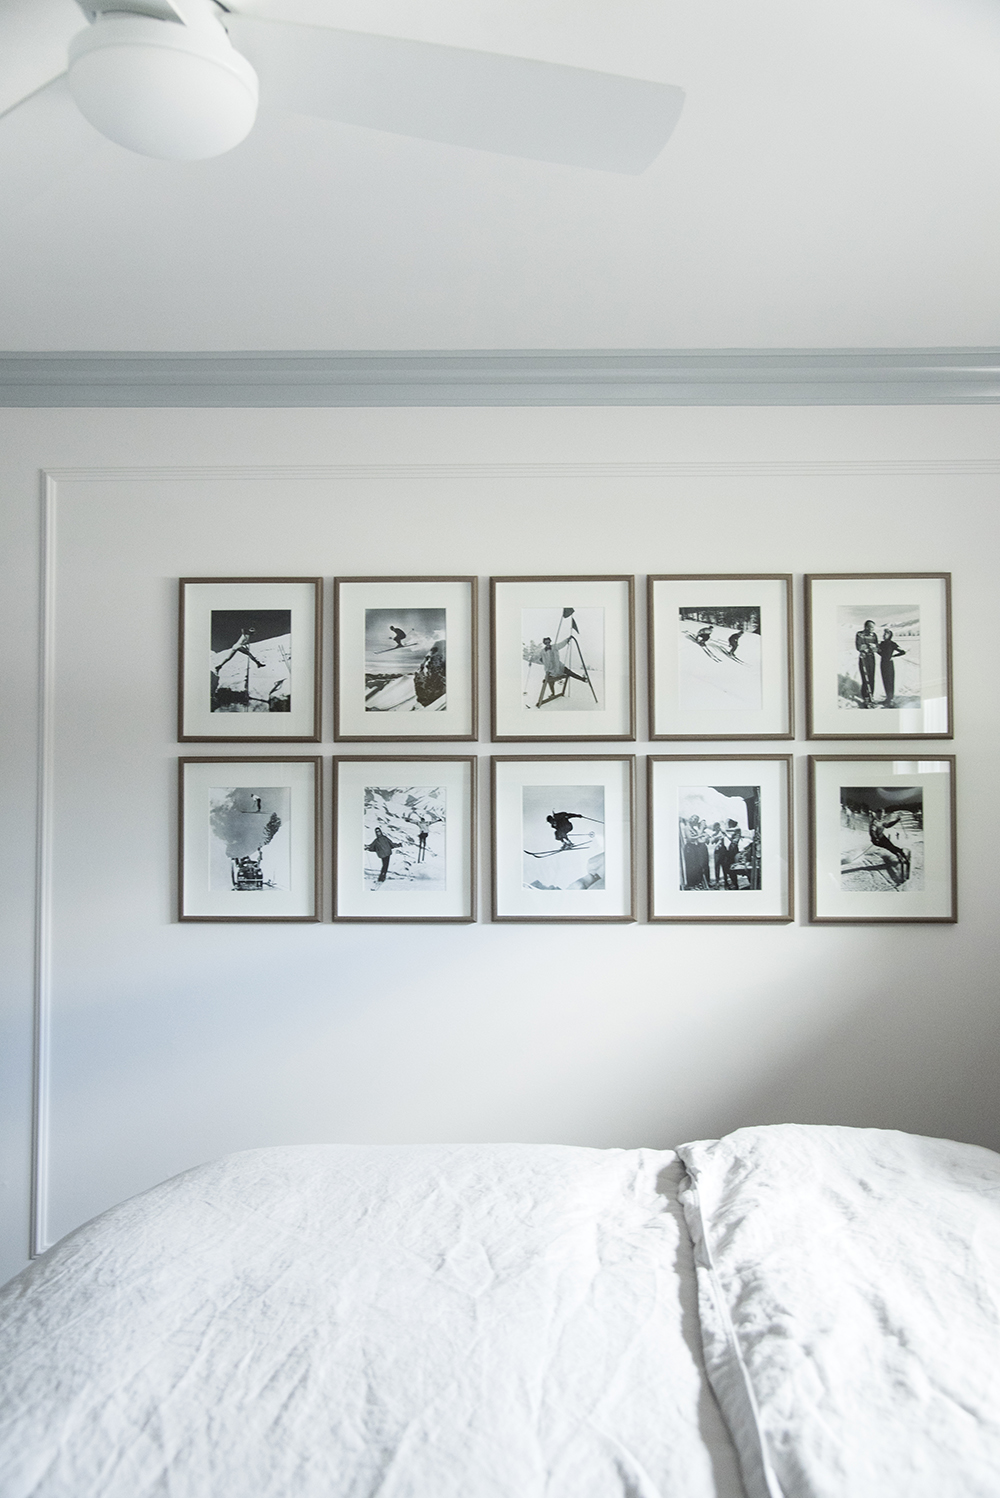 Wall Grid Your Guide To Creating The Perfect Grid Gallery Wall Room For